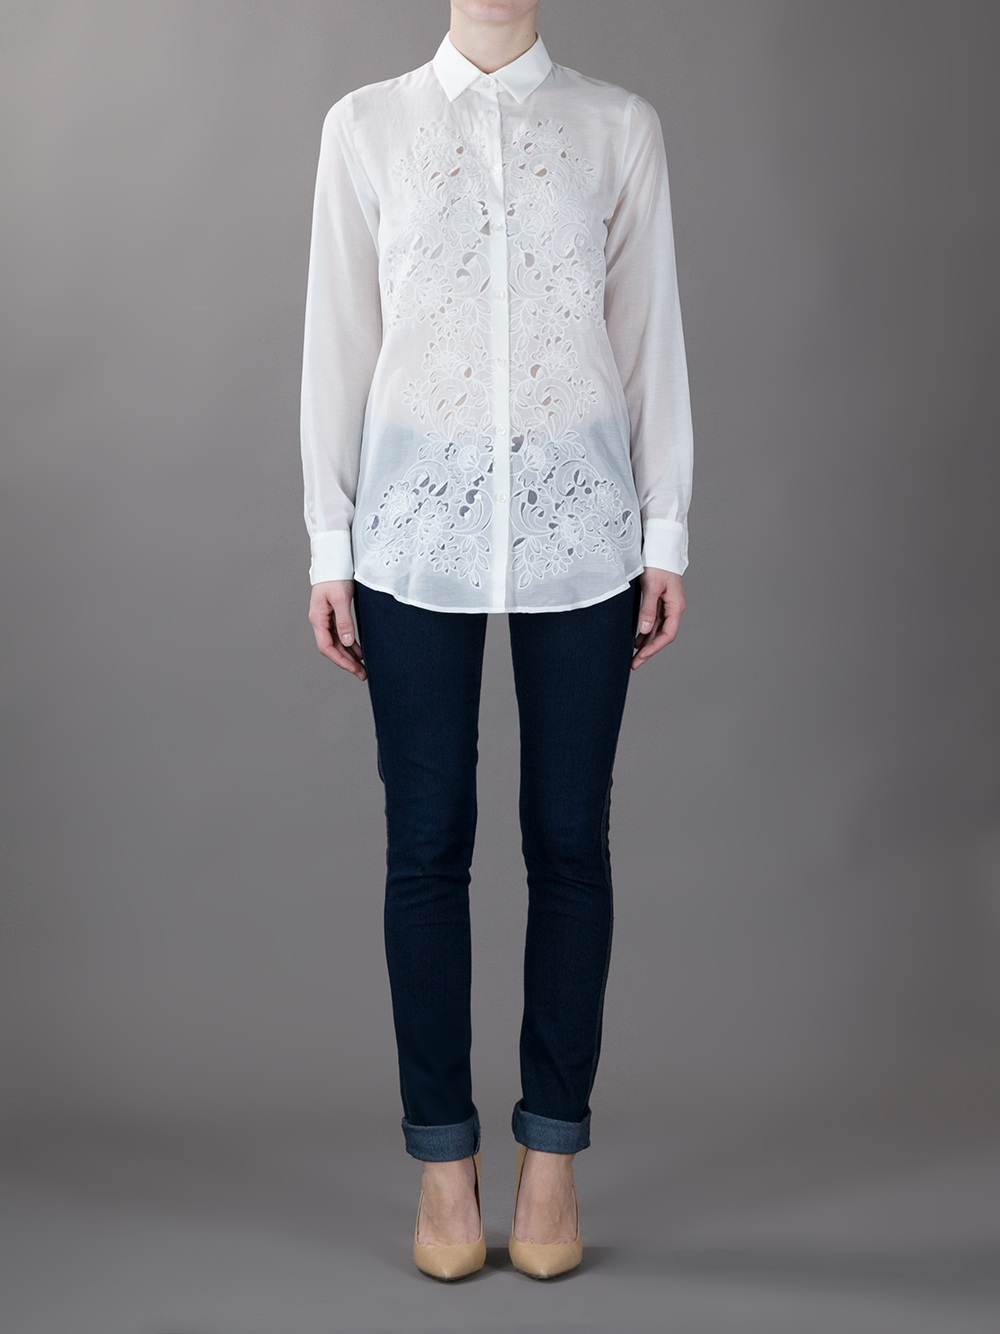 Lyst Etro Laser Cut Embroidered Front Shirt In White